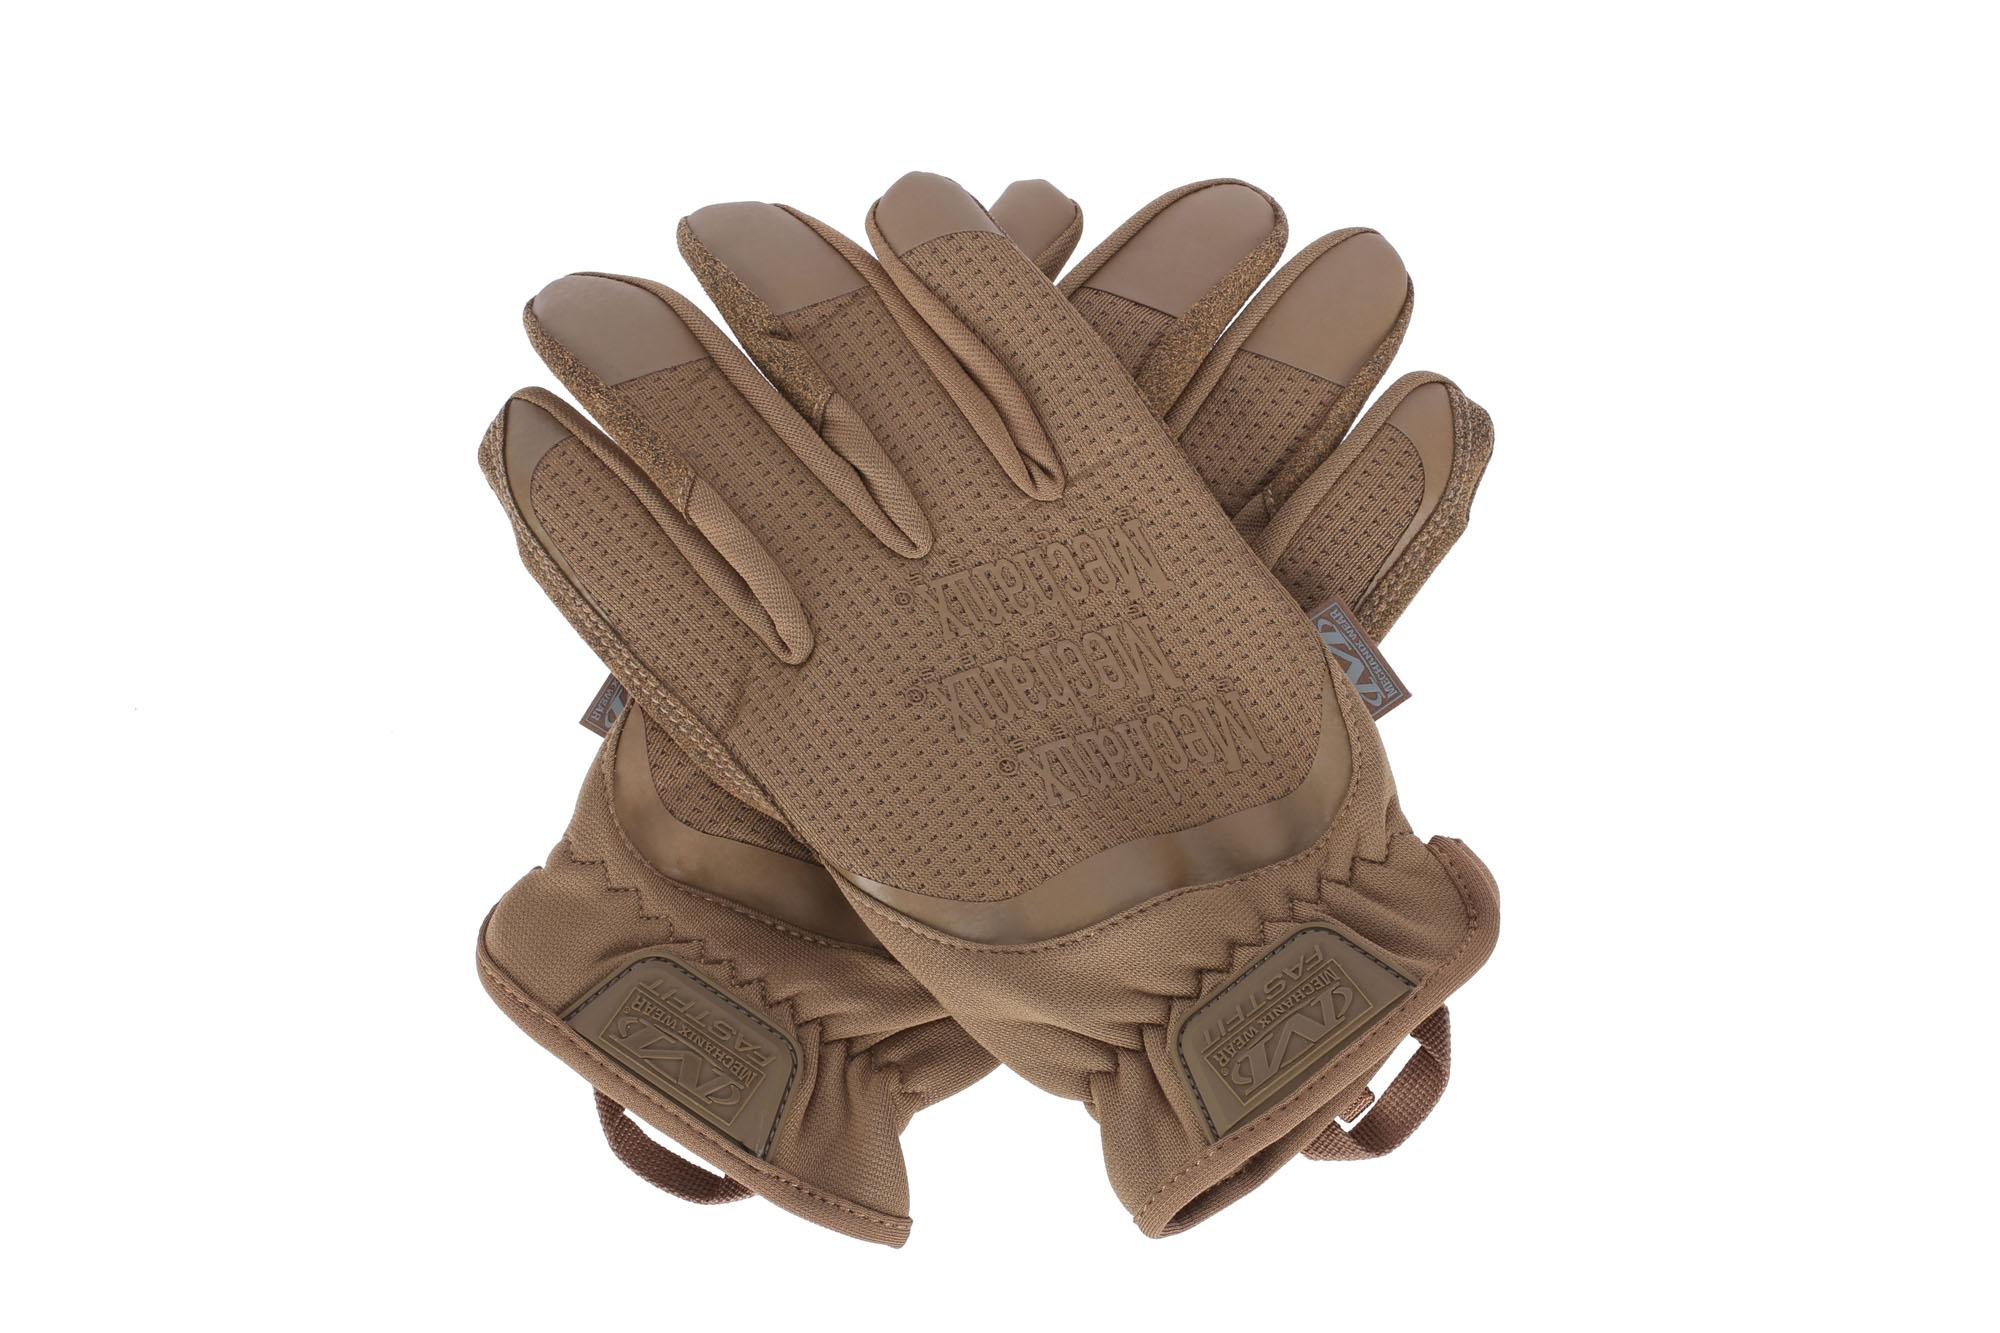 Mechanix Wear FastFit Coyote Glove - Extra Large